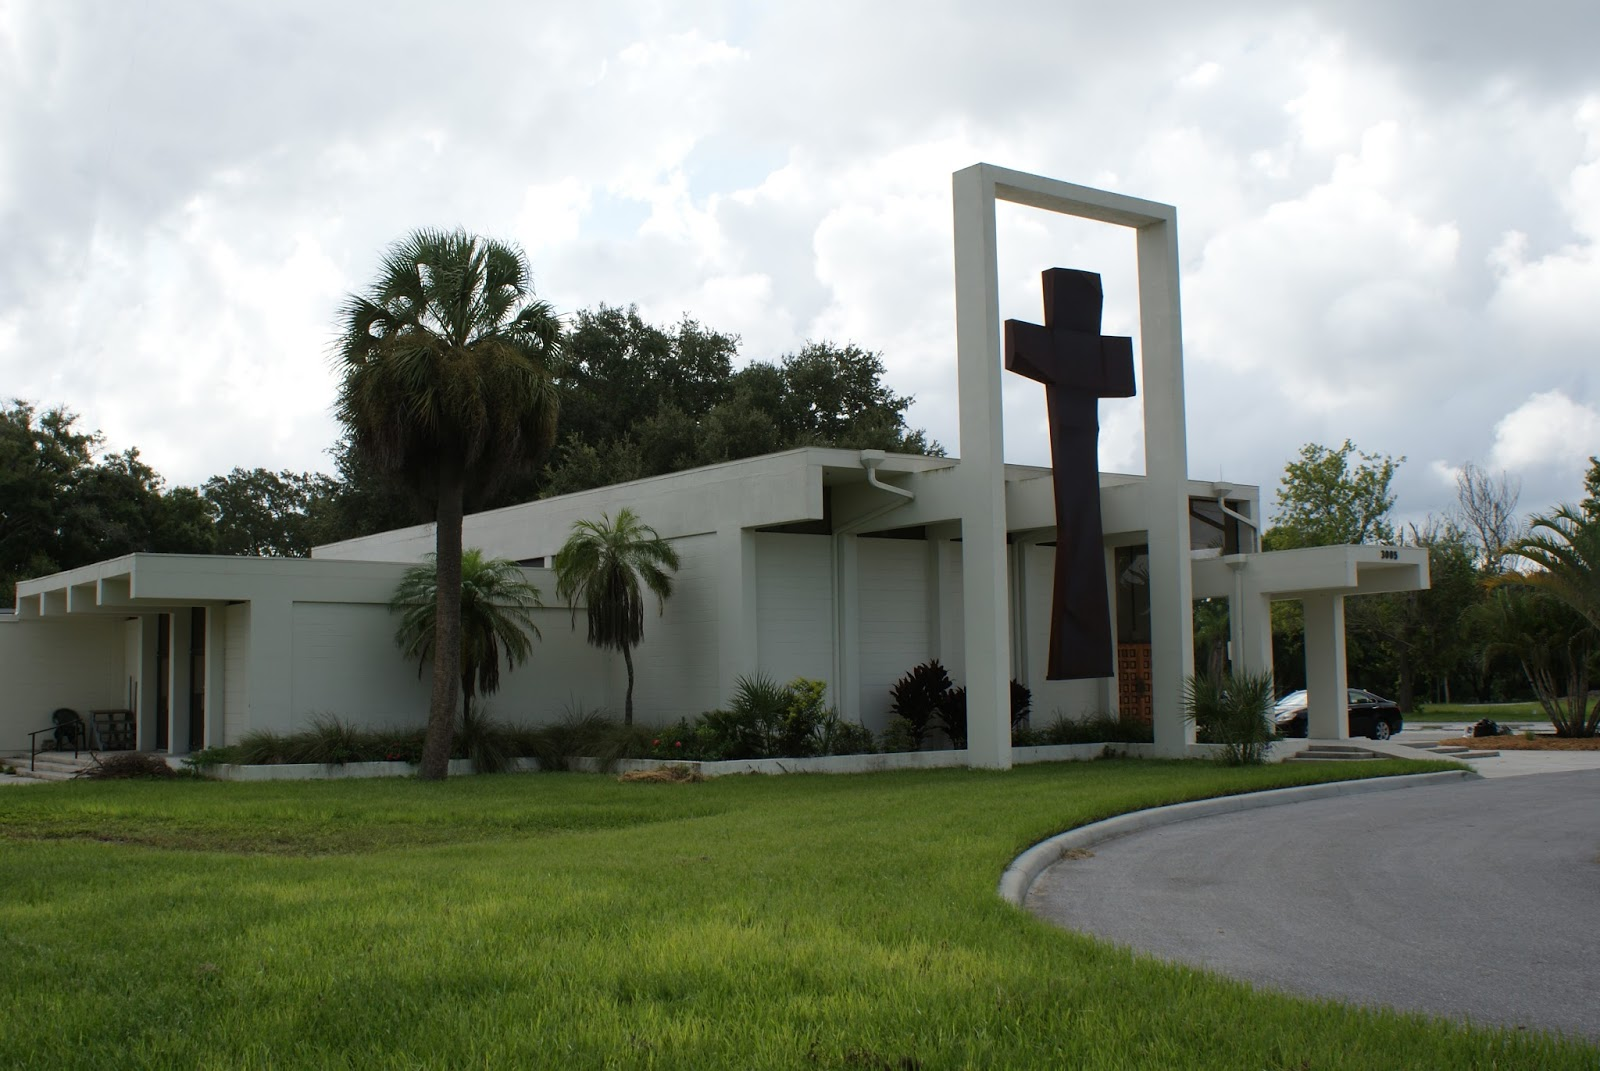 the west coast church of the cross as it is known at the time of this posting can be found at 3005 s tuttle ave sarasota fl 34239 just north of the